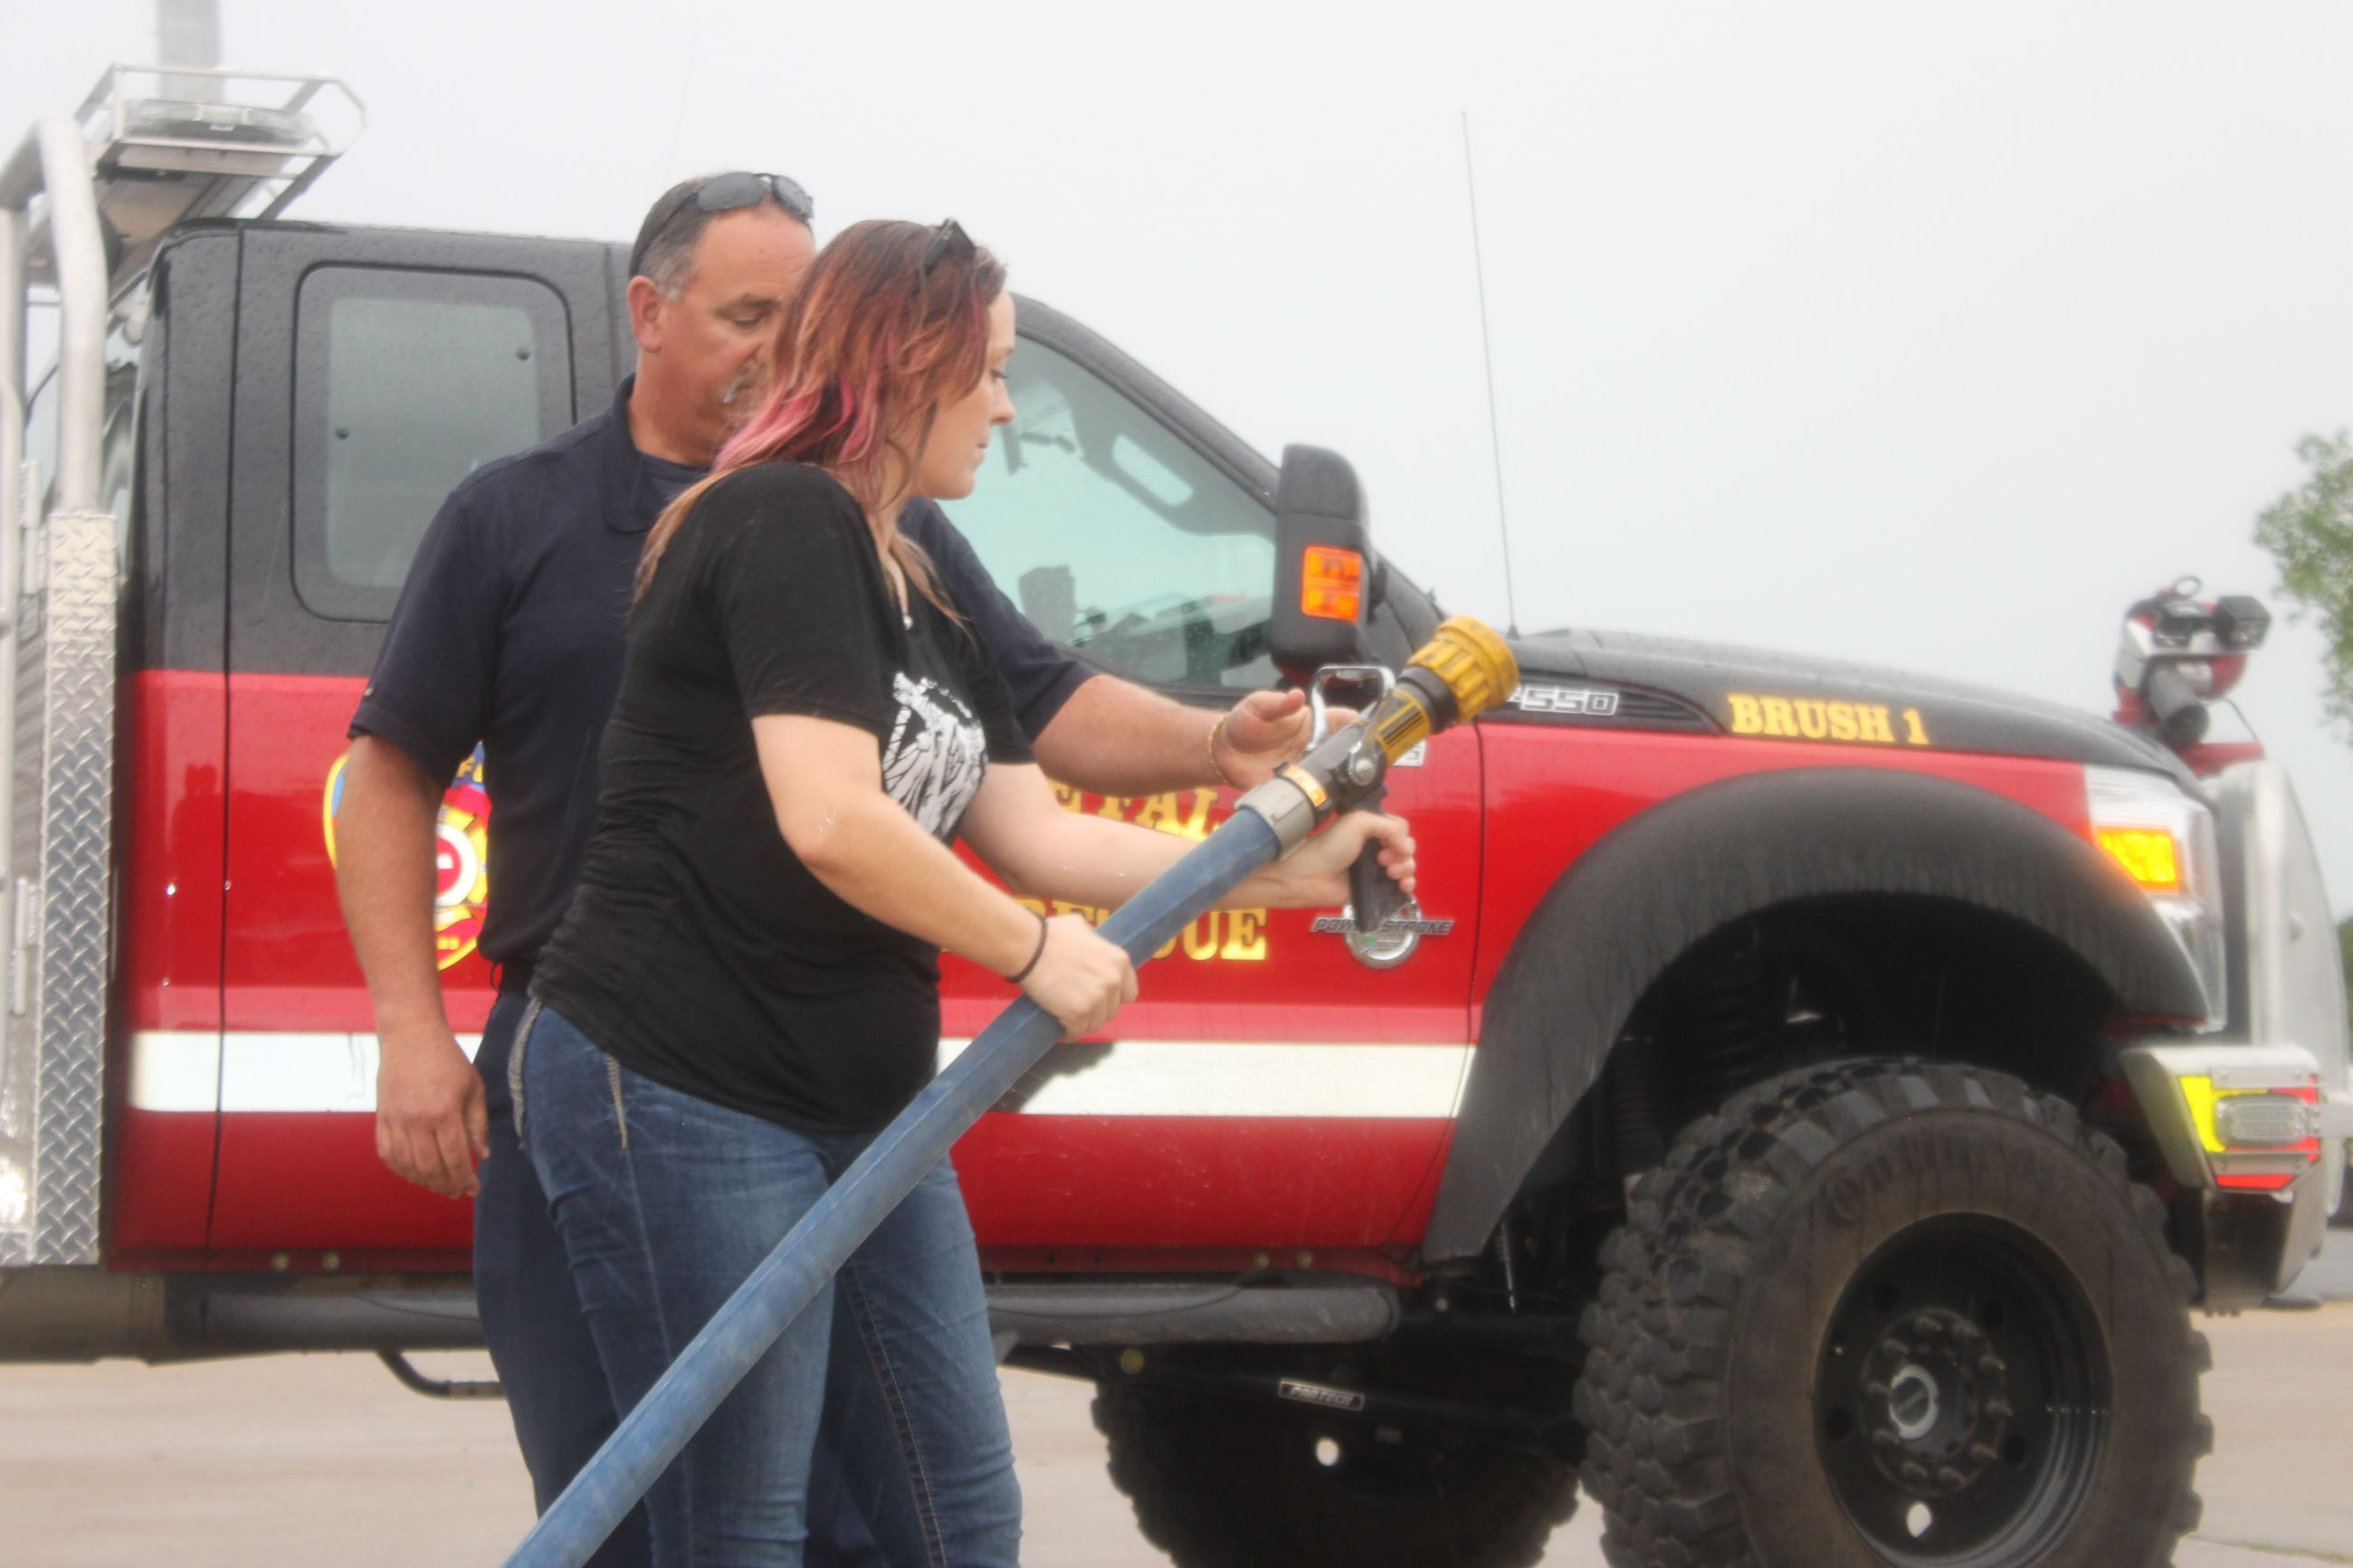 A firefighter teaches someone how to use a fire hose